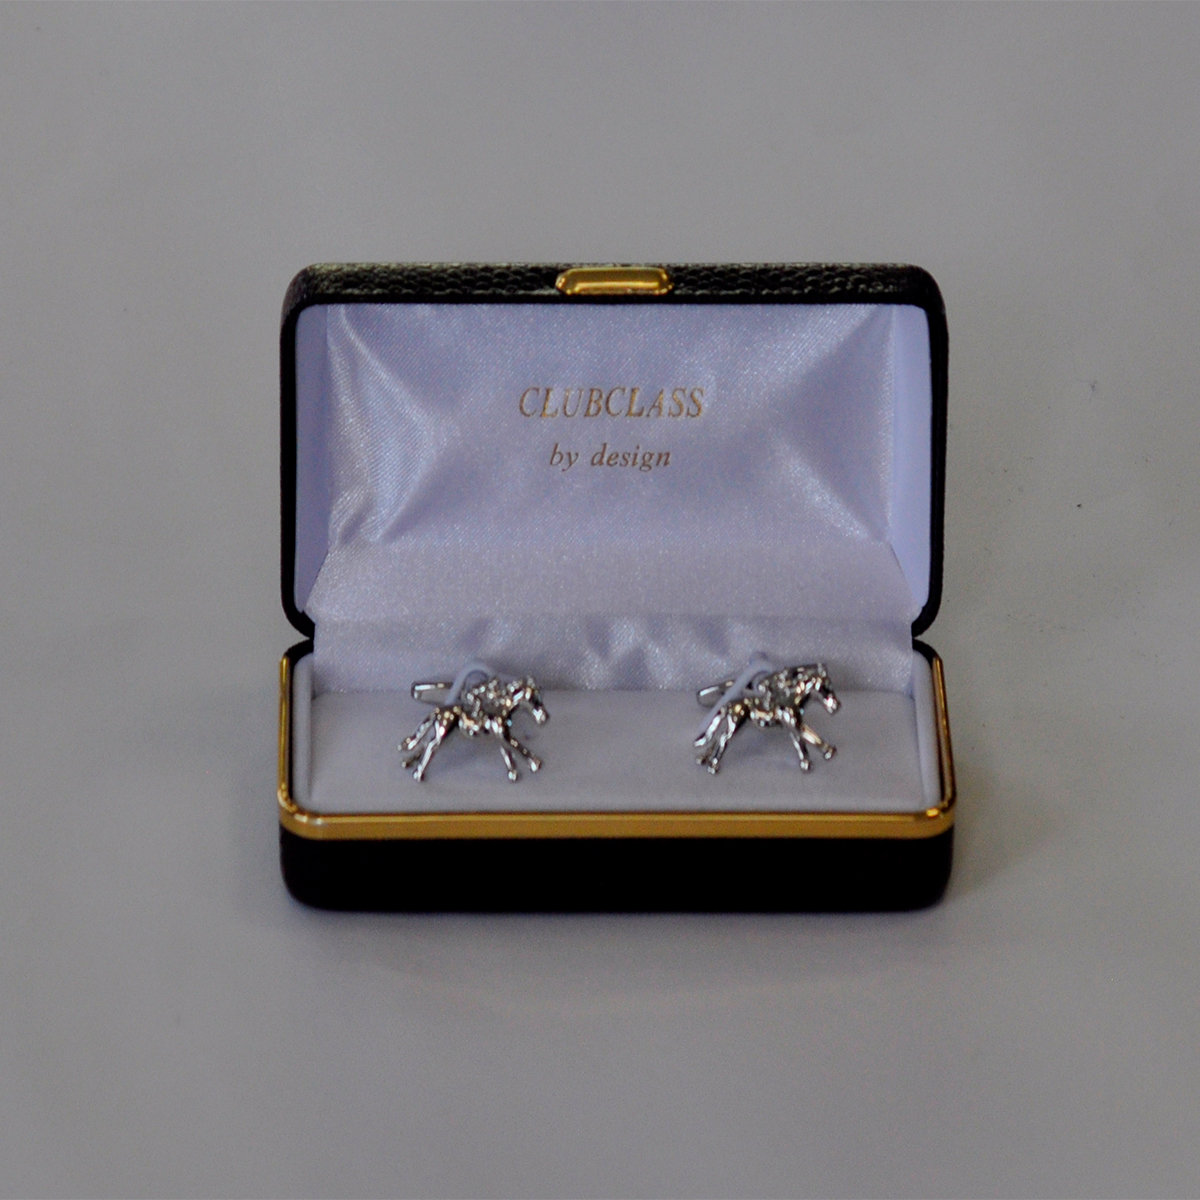 Horse Racing Cuff Links - €35.00